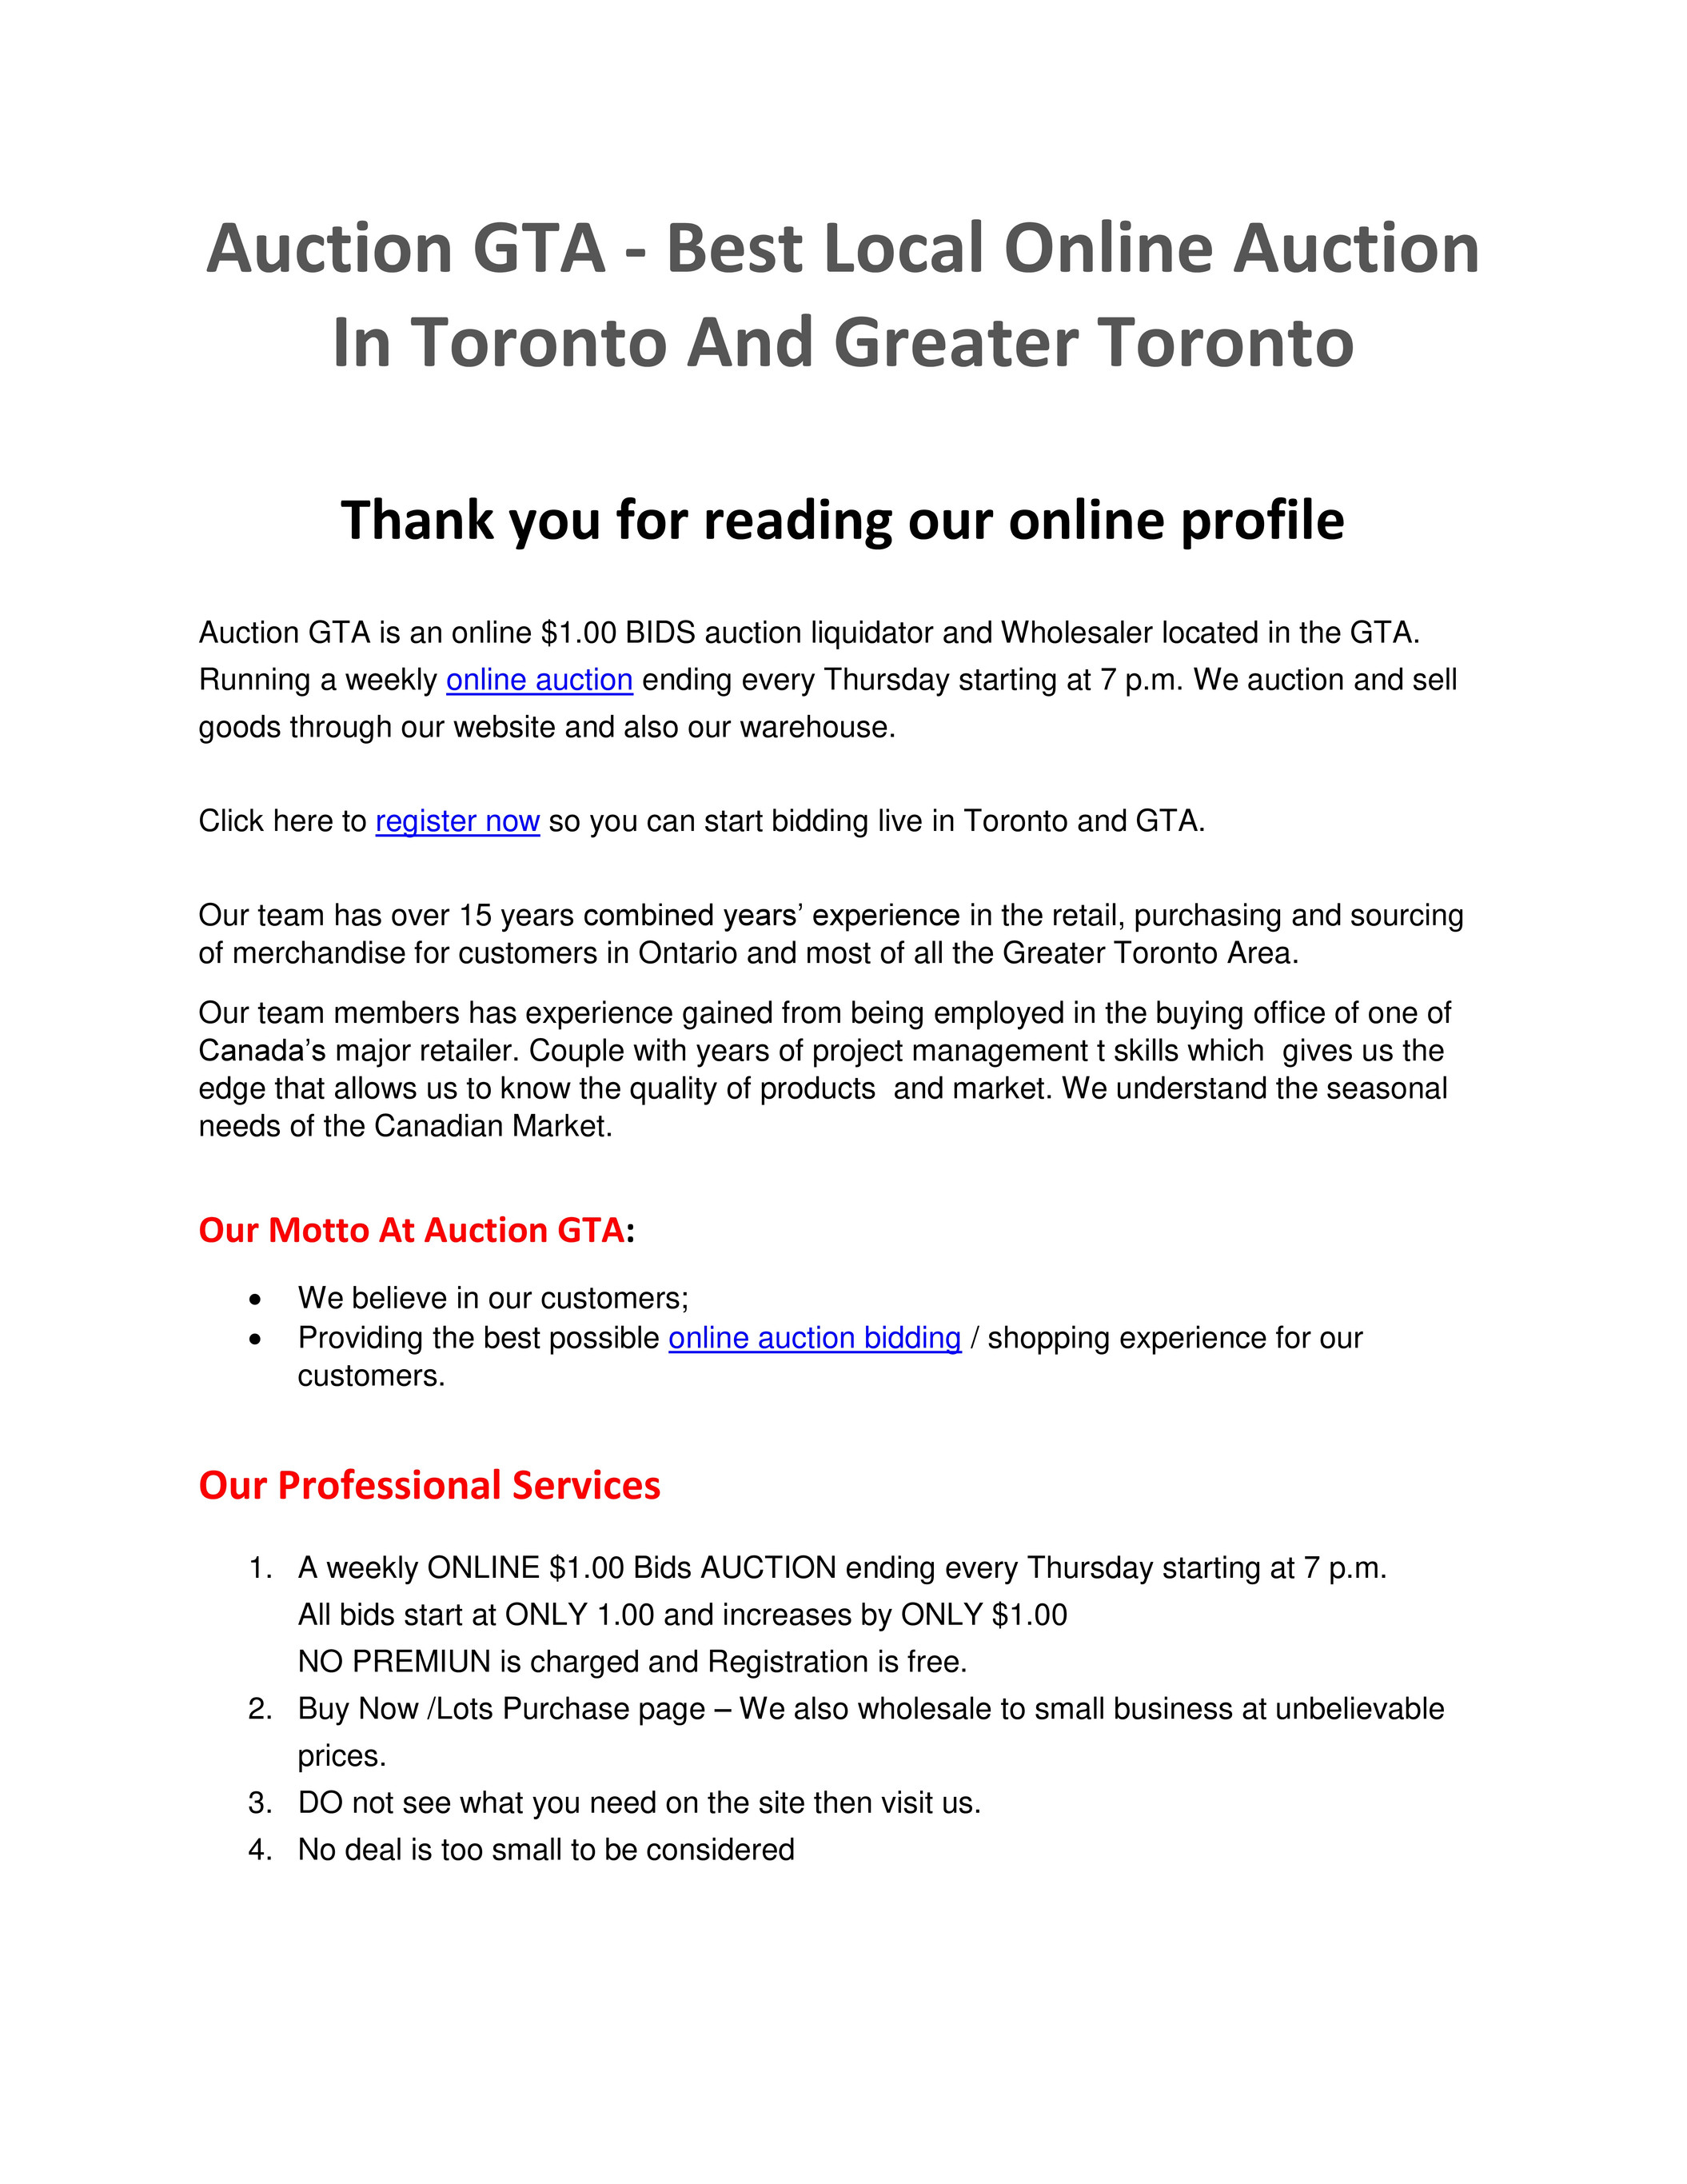 My Publications Auction Gta Best Local Online Auction Page 1 Created With Publitas Com